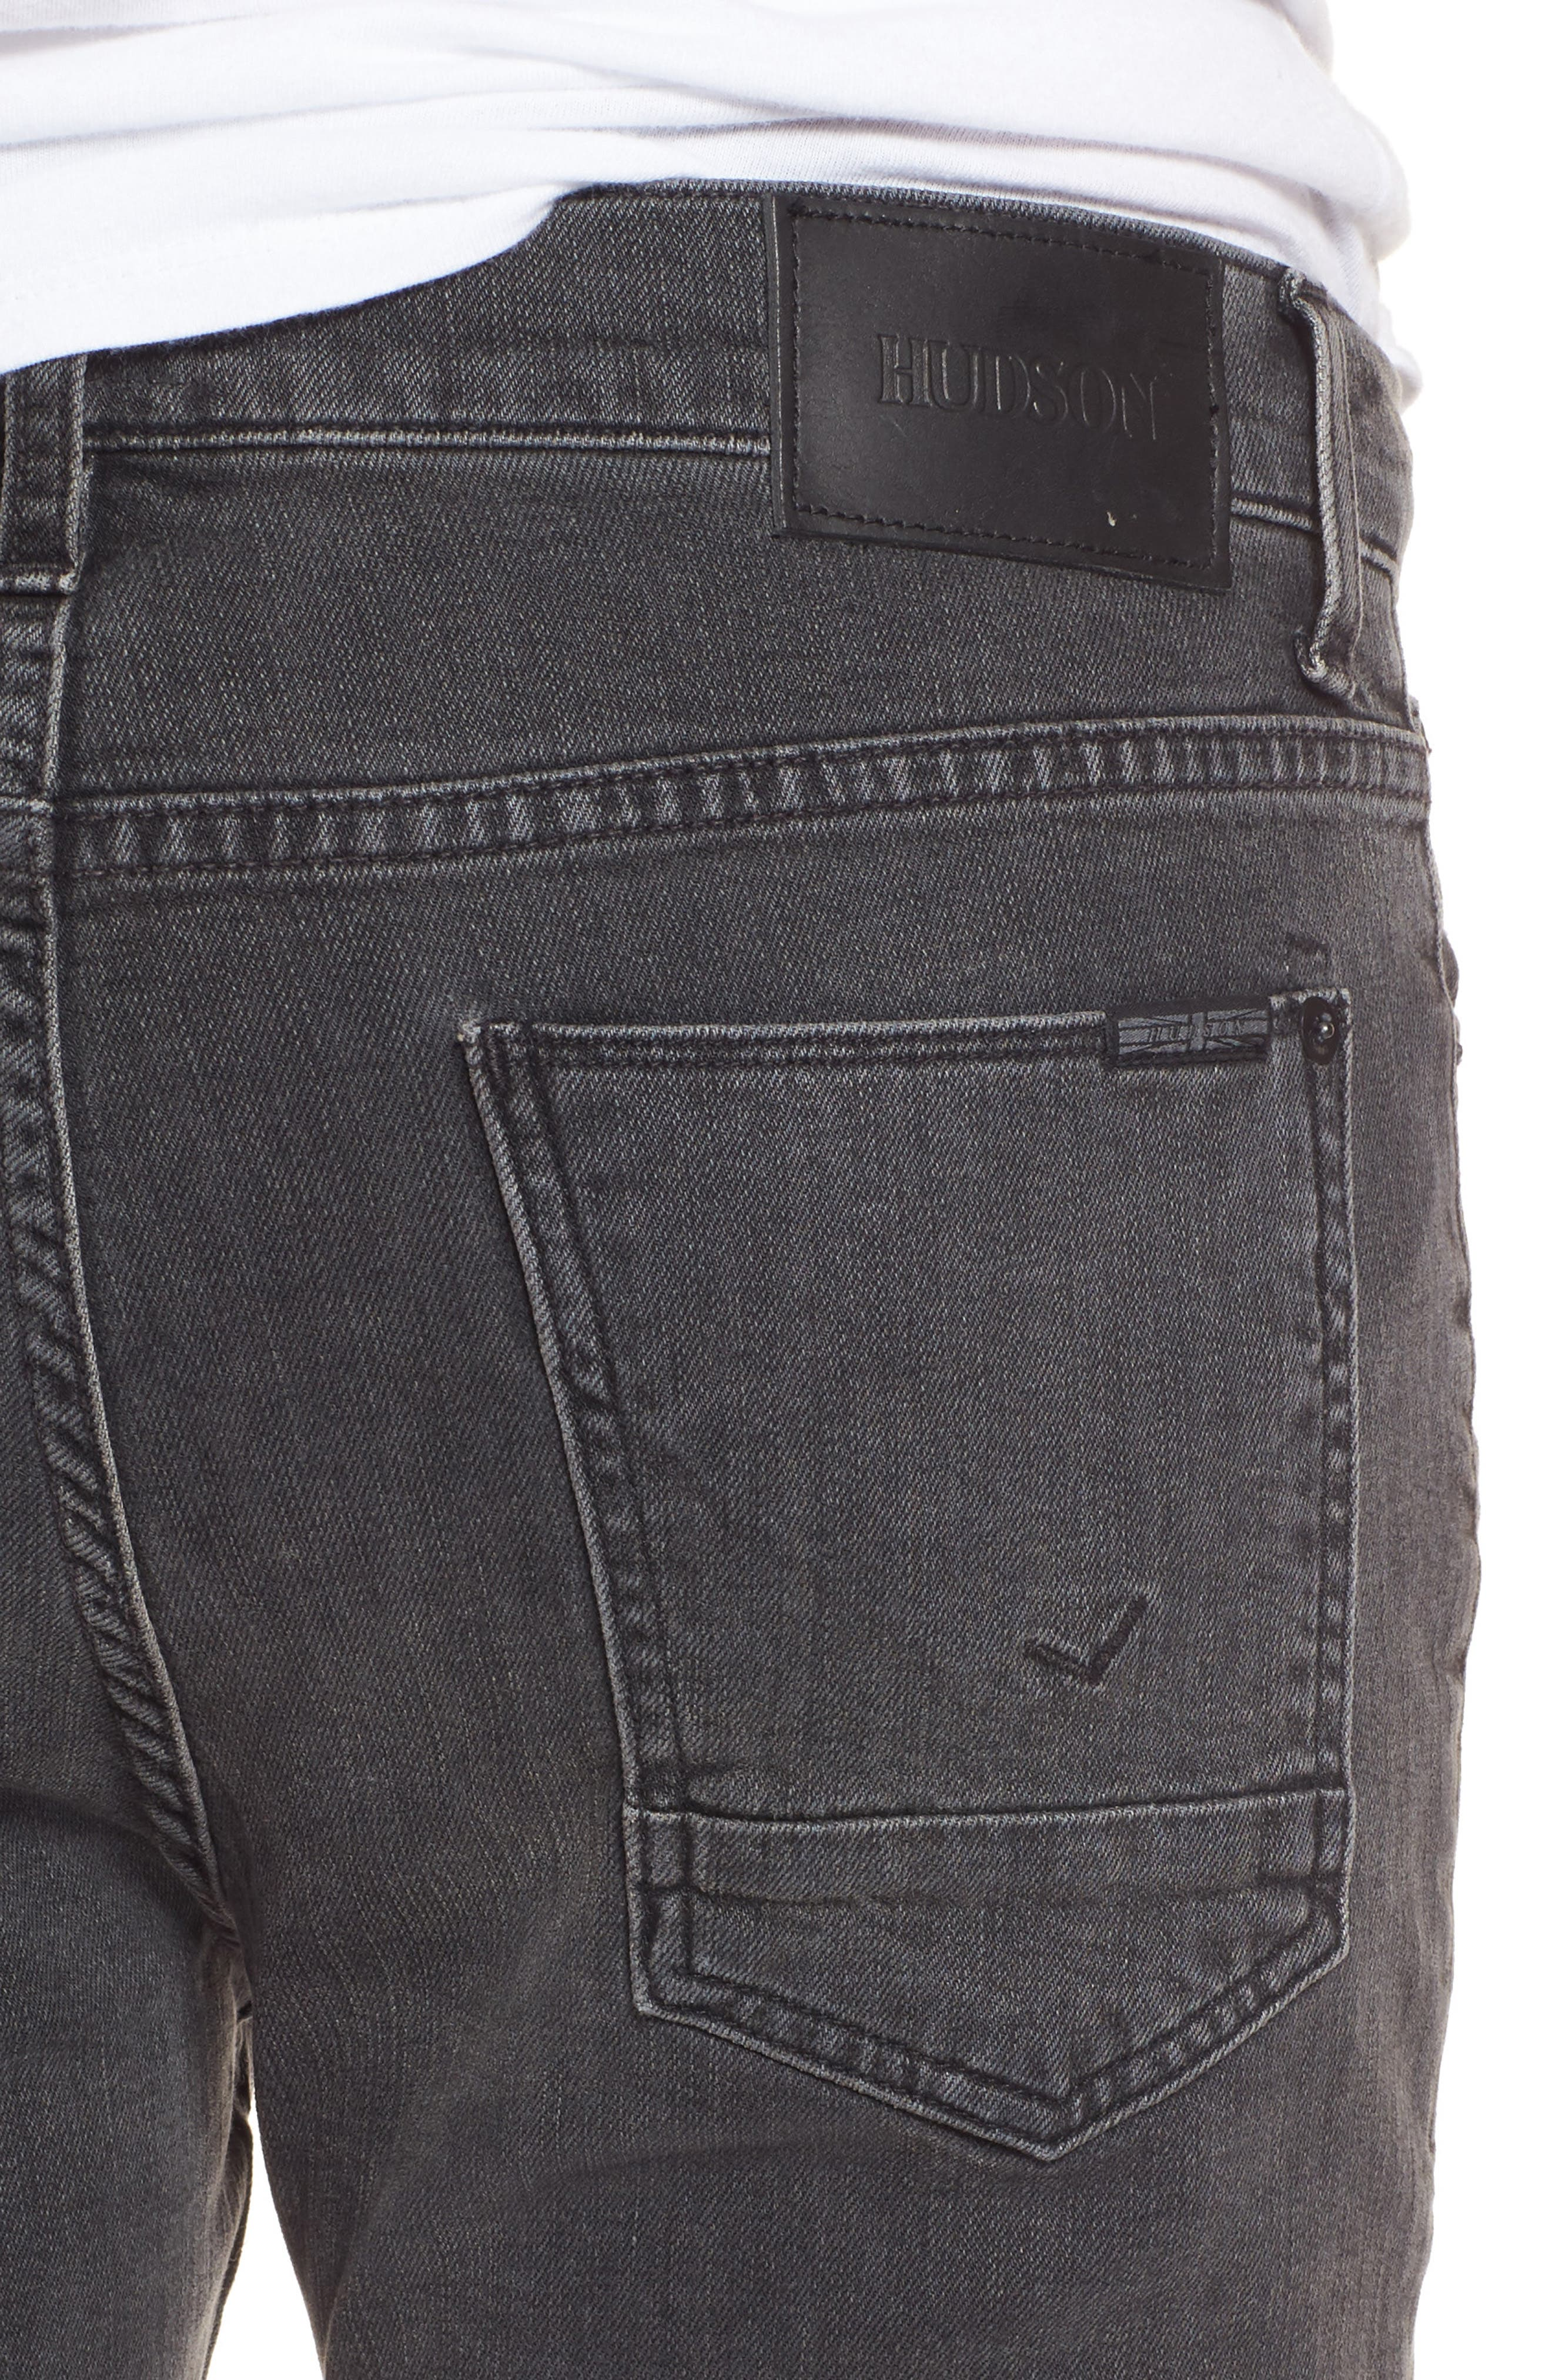 Axl Skinny Fit Jeans,                             Alternate thumbnail 4, color,                             Oxidize